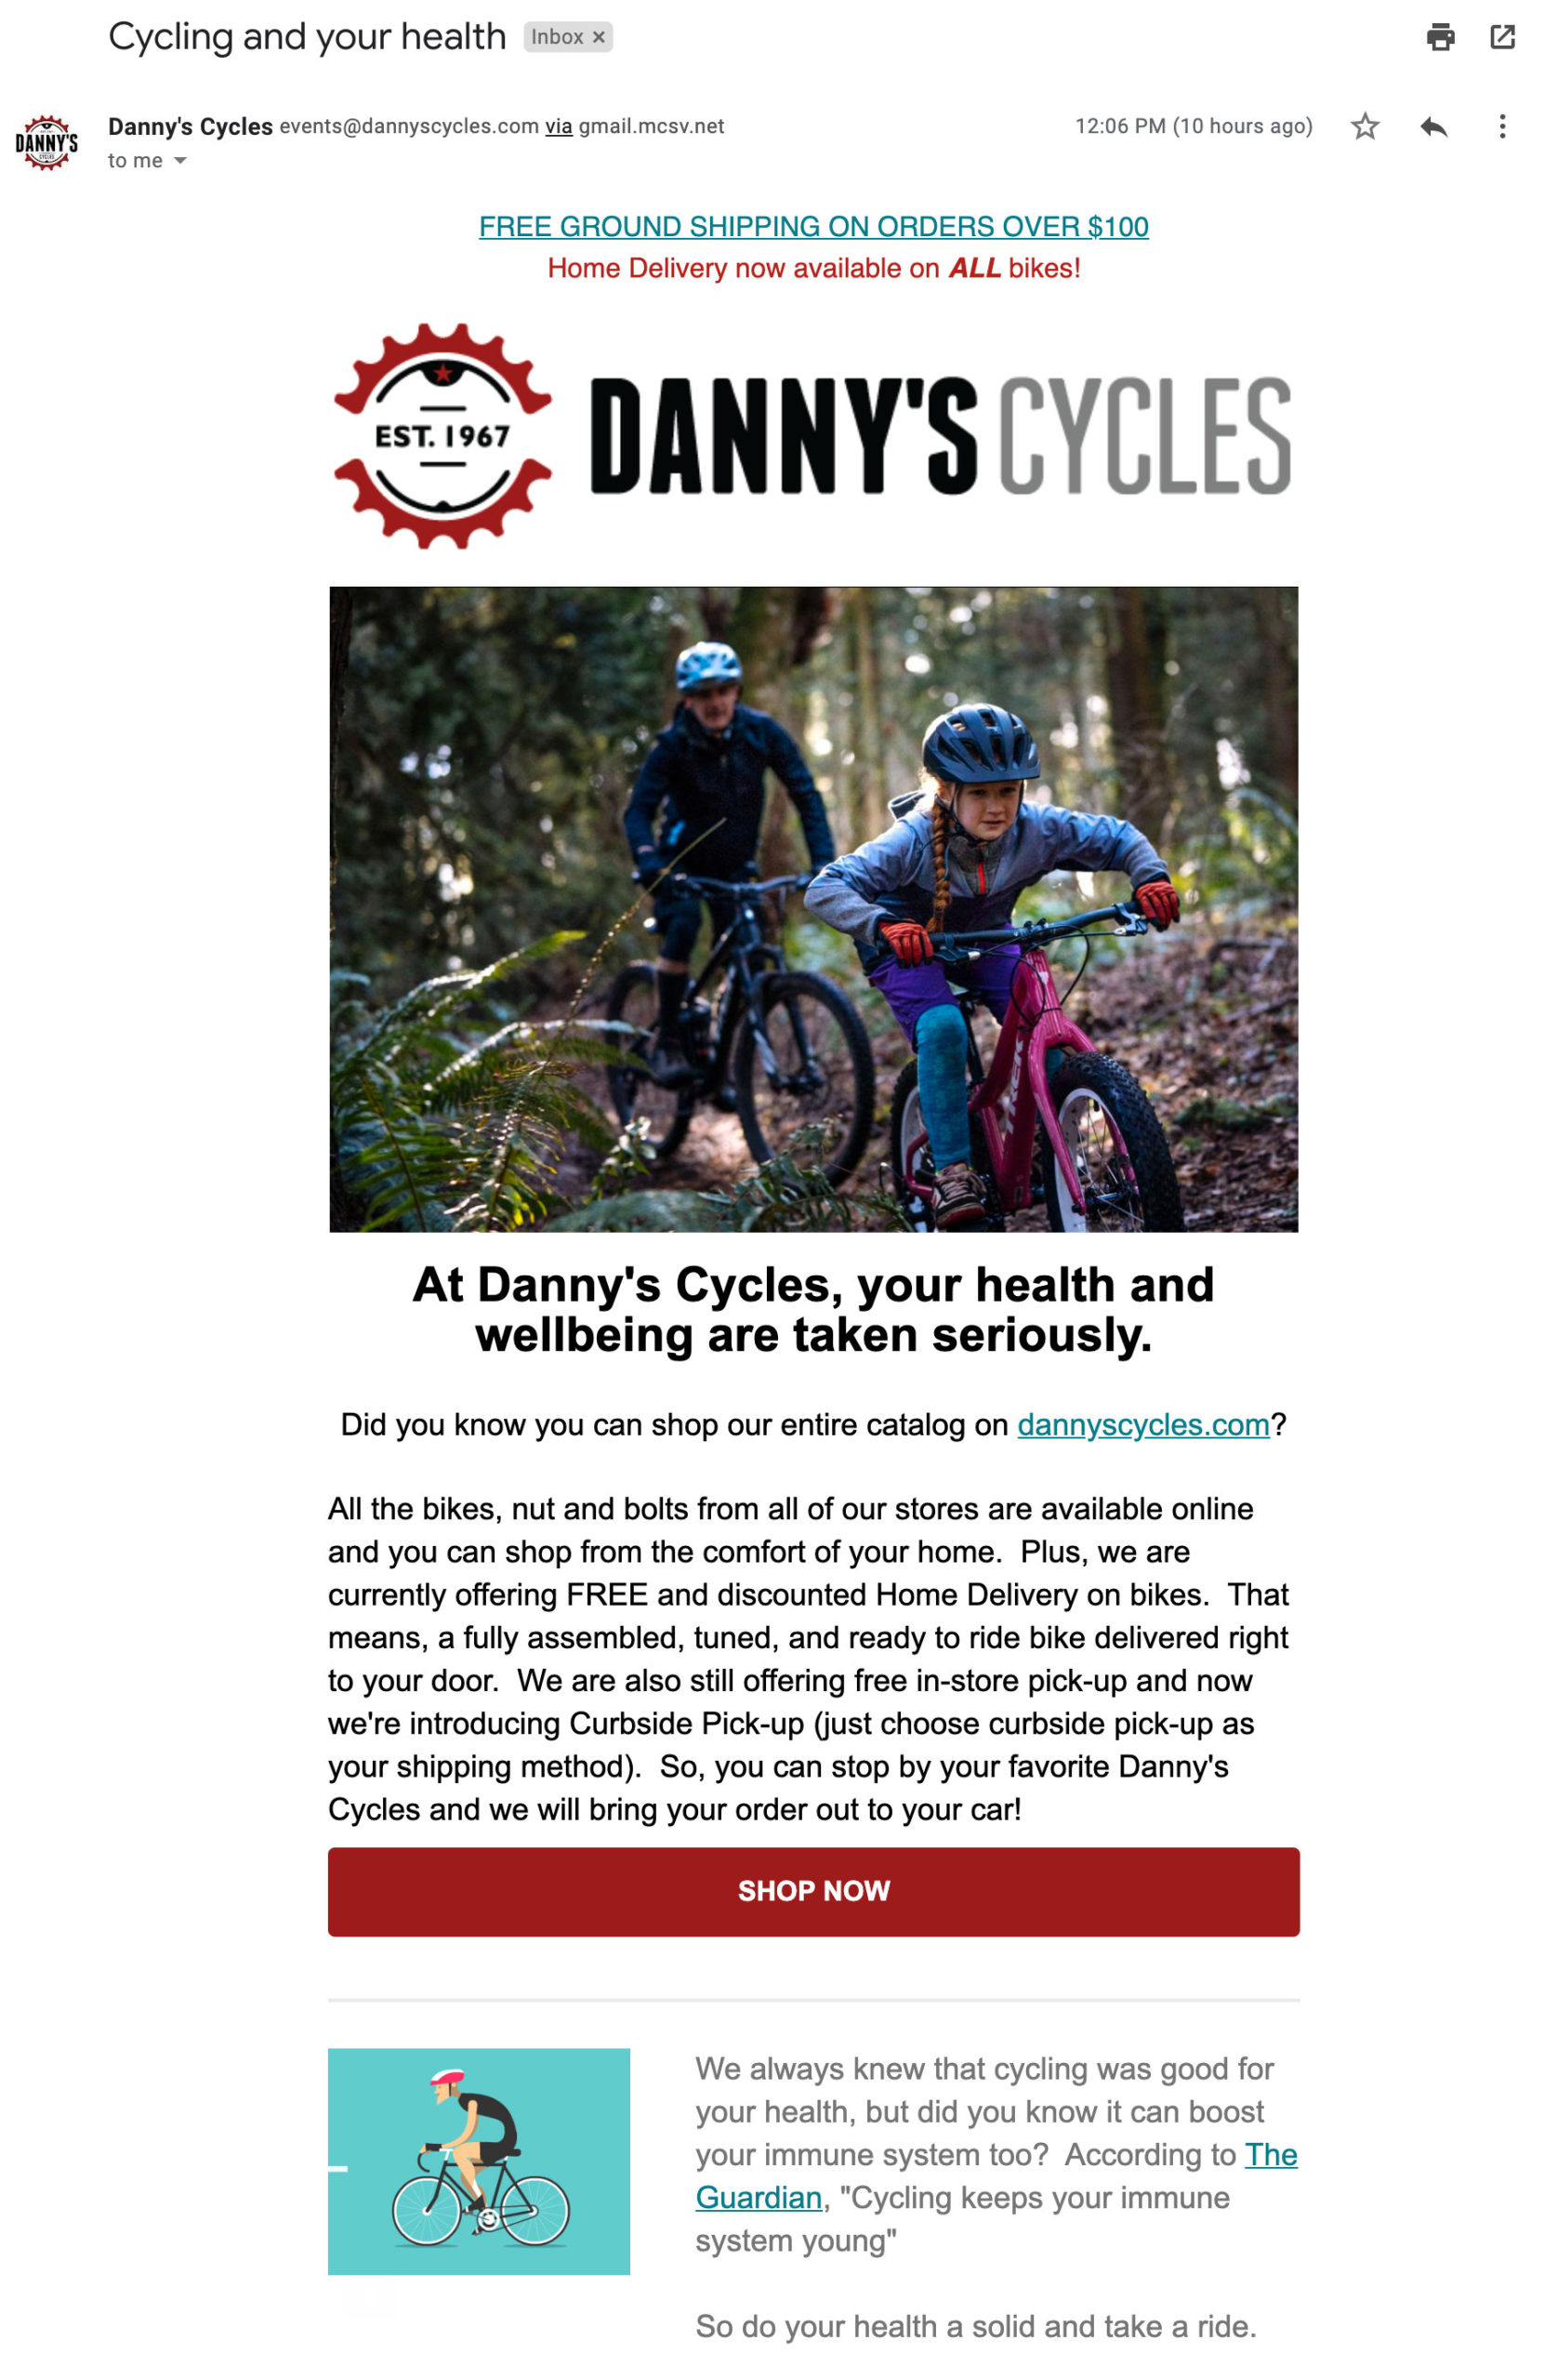 Danny's Cycles emails around physical wellbeing.